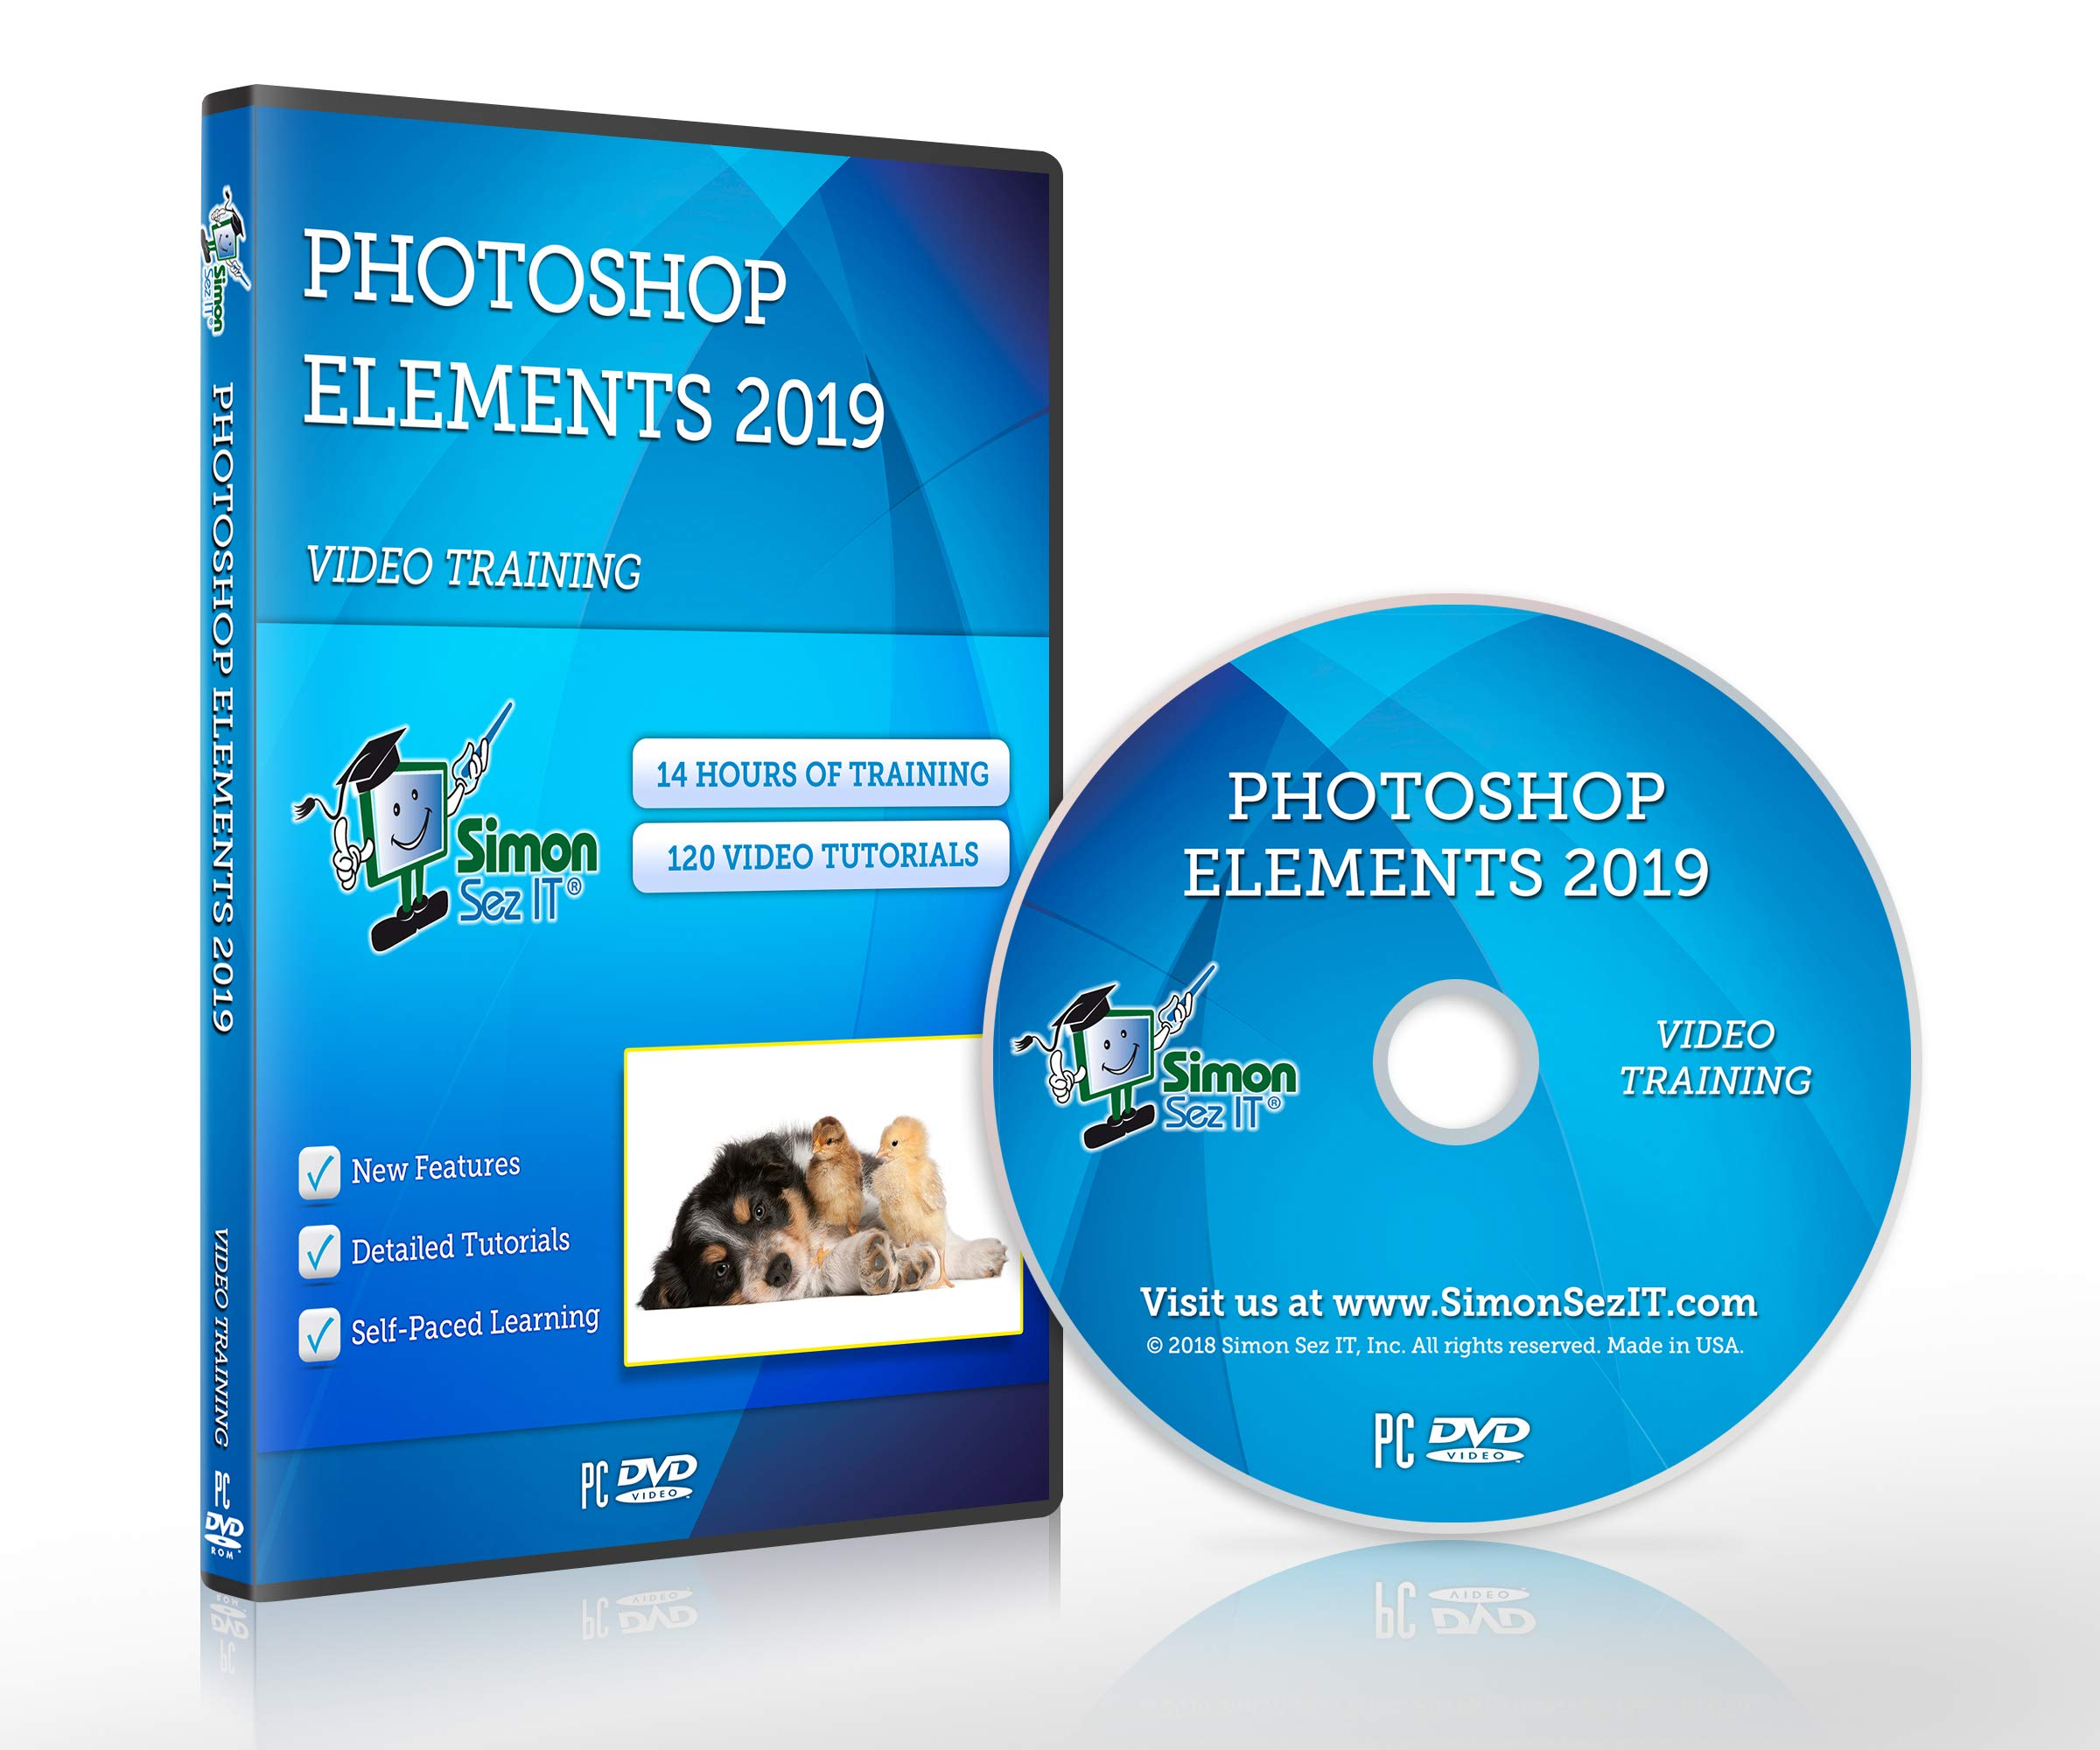 Photoshop Elements 2019 Self-Paced DVD Training Course By Simon Sez IT. Learn Photoshop Elements 2019 by Simon Sez IT